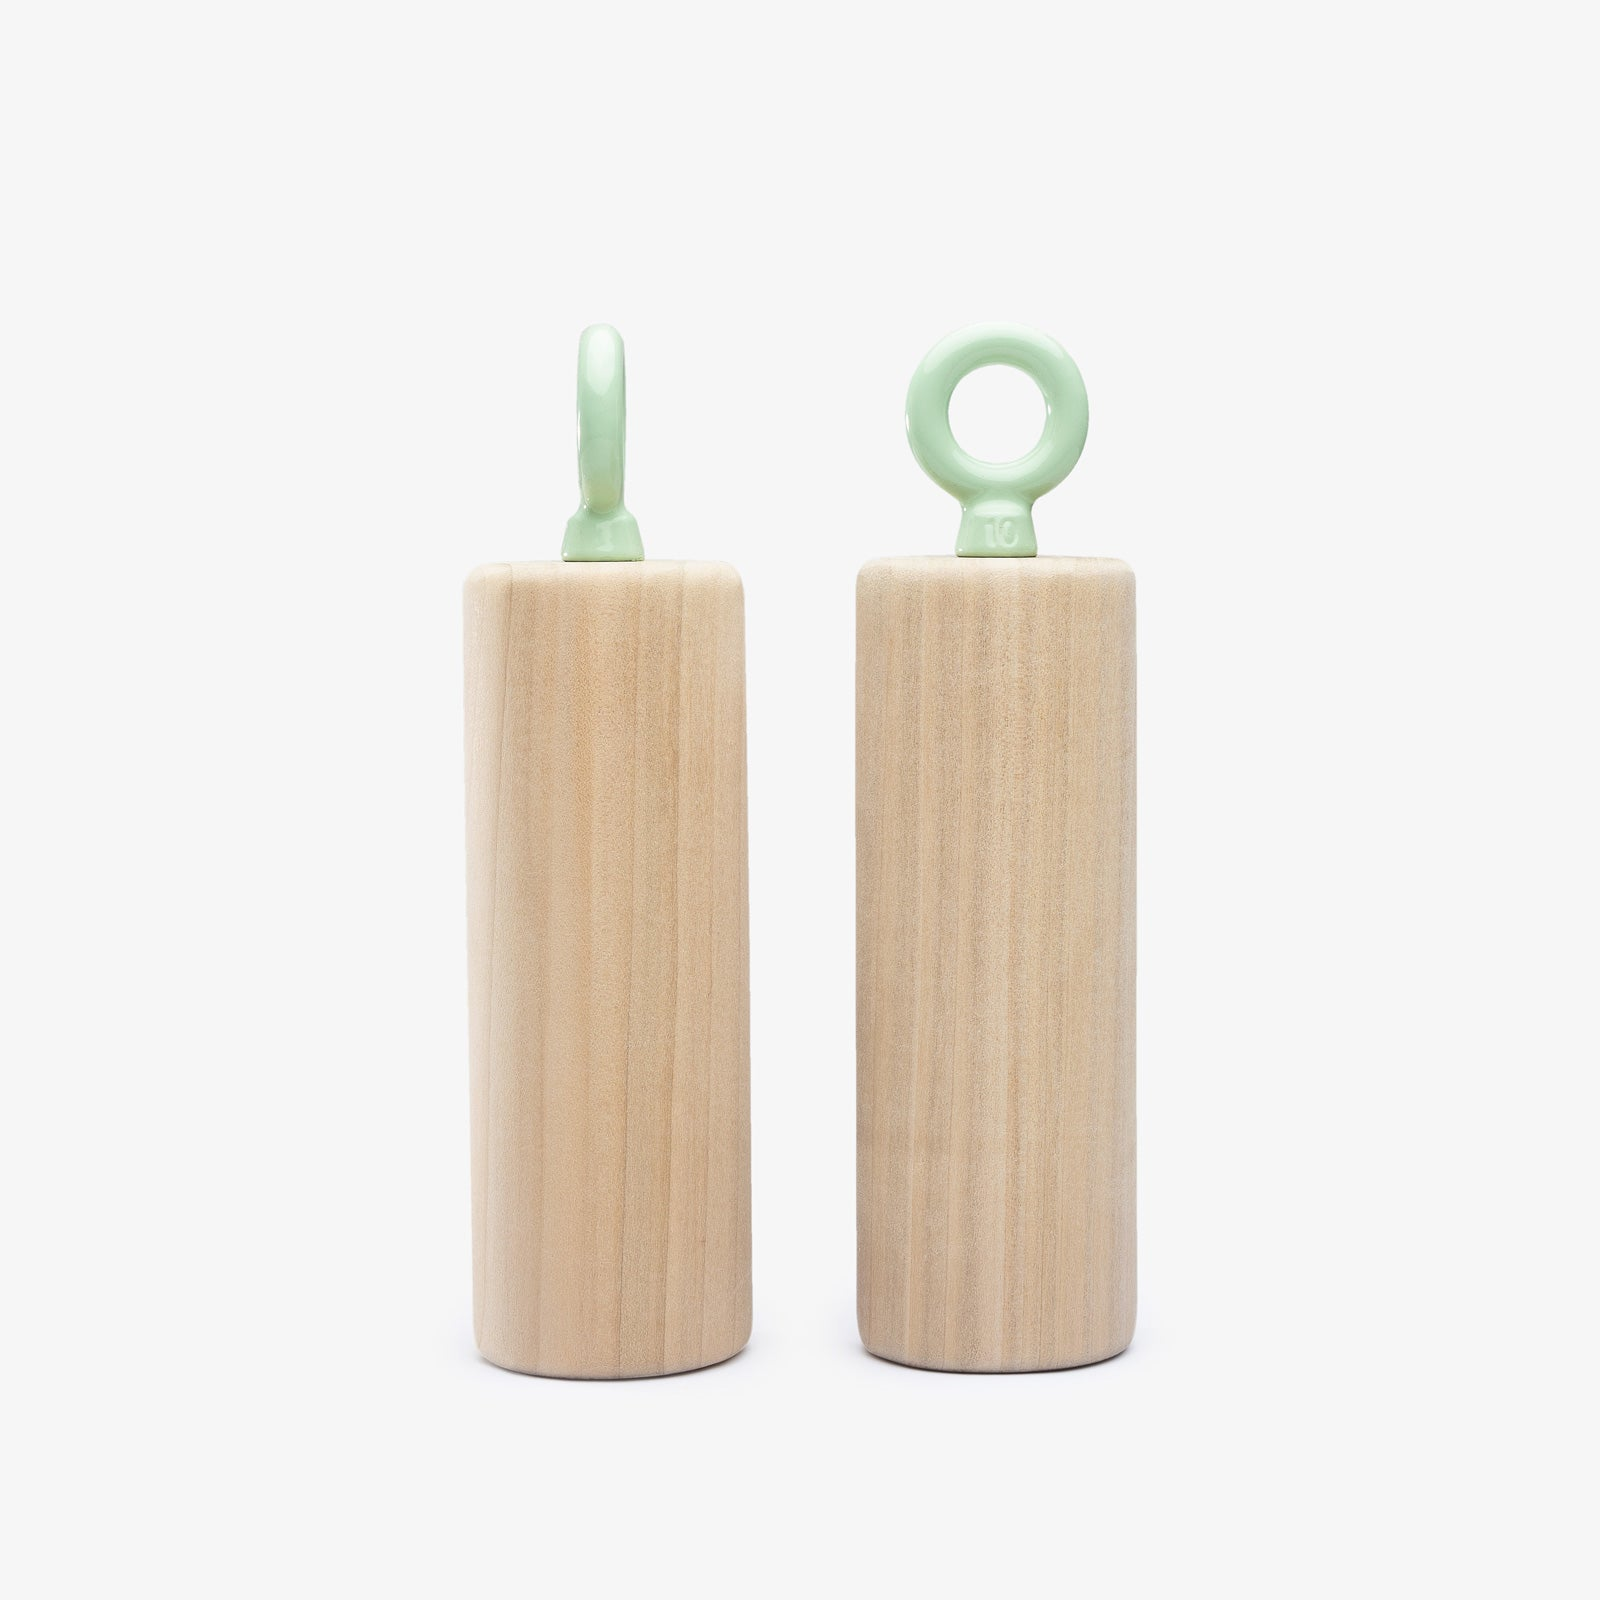 "Tension Wood Trainers - 2.5"" Vert Pipe"